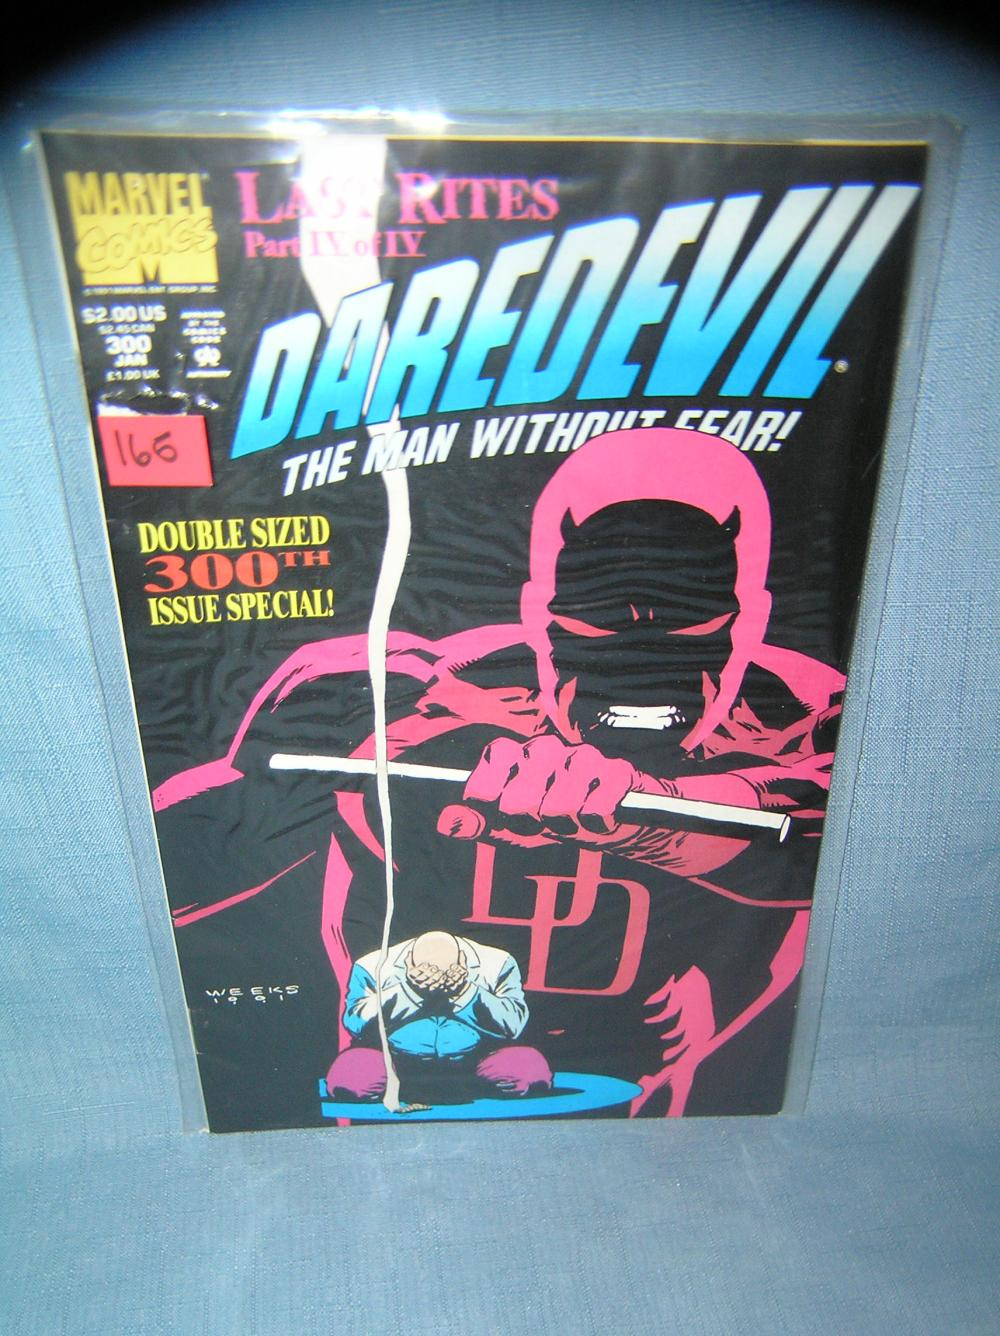 VINTAGE MARVEL DAREDEVIL COMIC BOOK